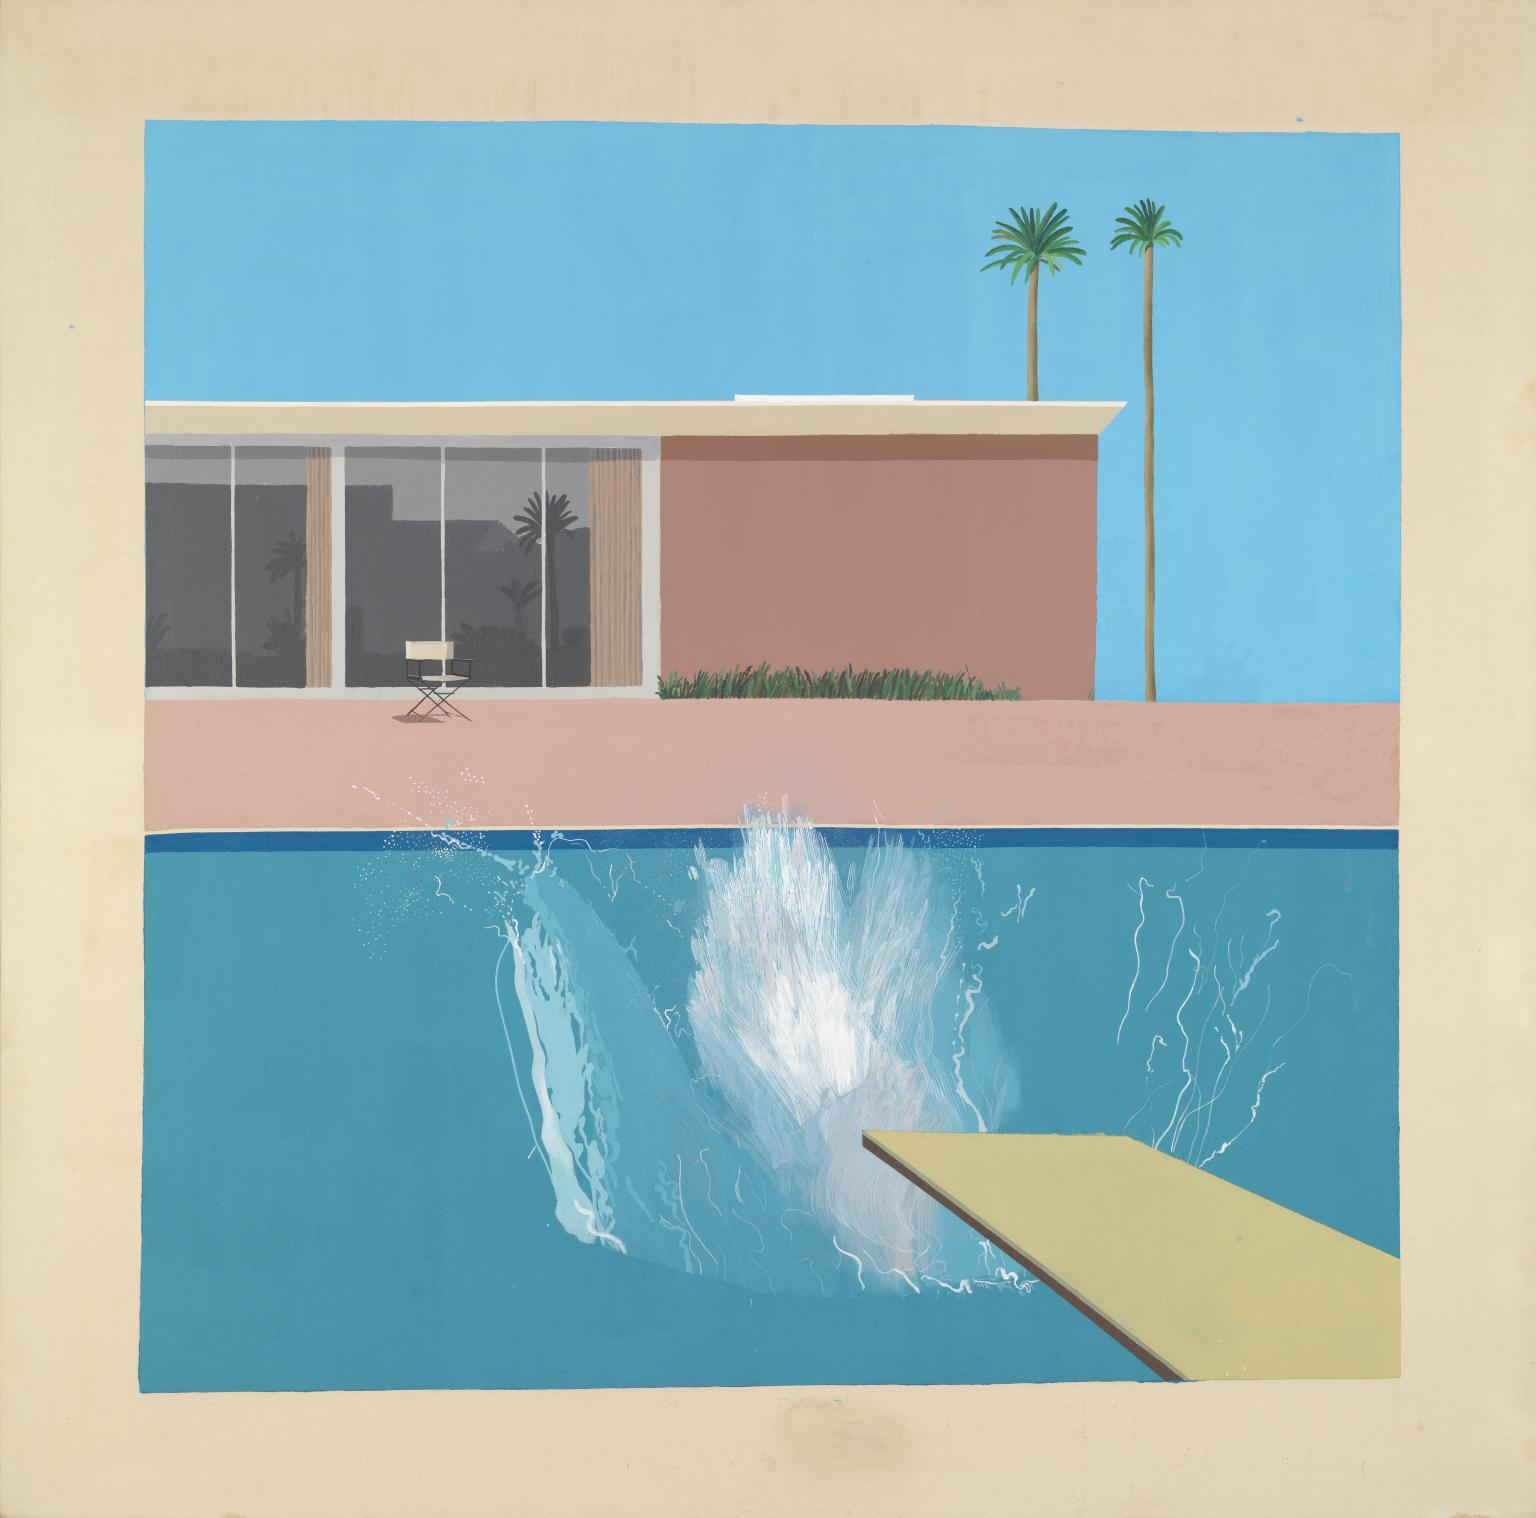 """A Bigger Splash"", David Hockney, 1967"